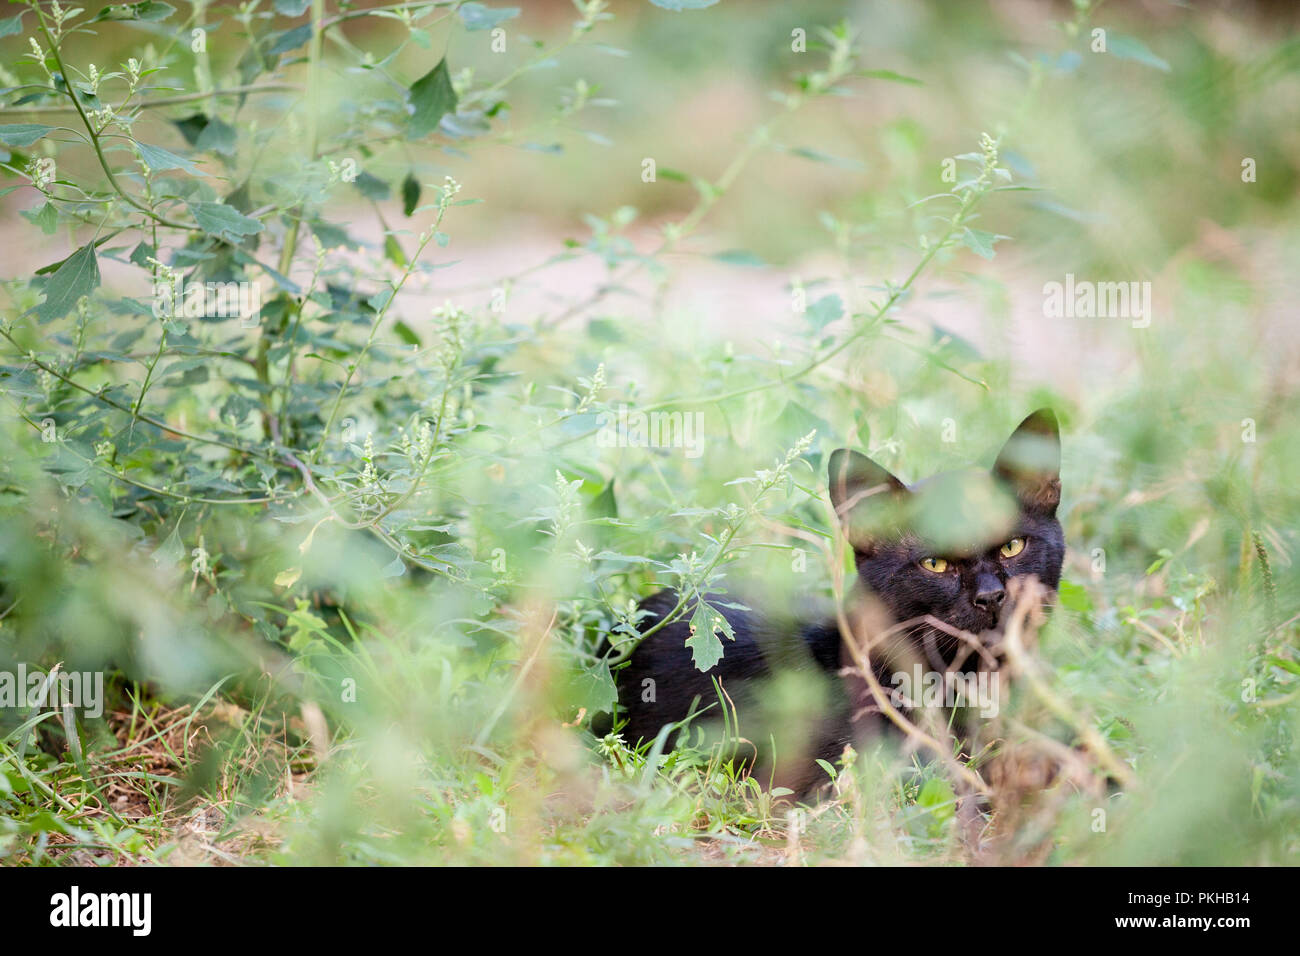 Angry stray black cat, hiding in grasses and bushes, looking and staring at the camera with its yellow eyes  Picture of a stray black cat, hiding in t - Stock Image